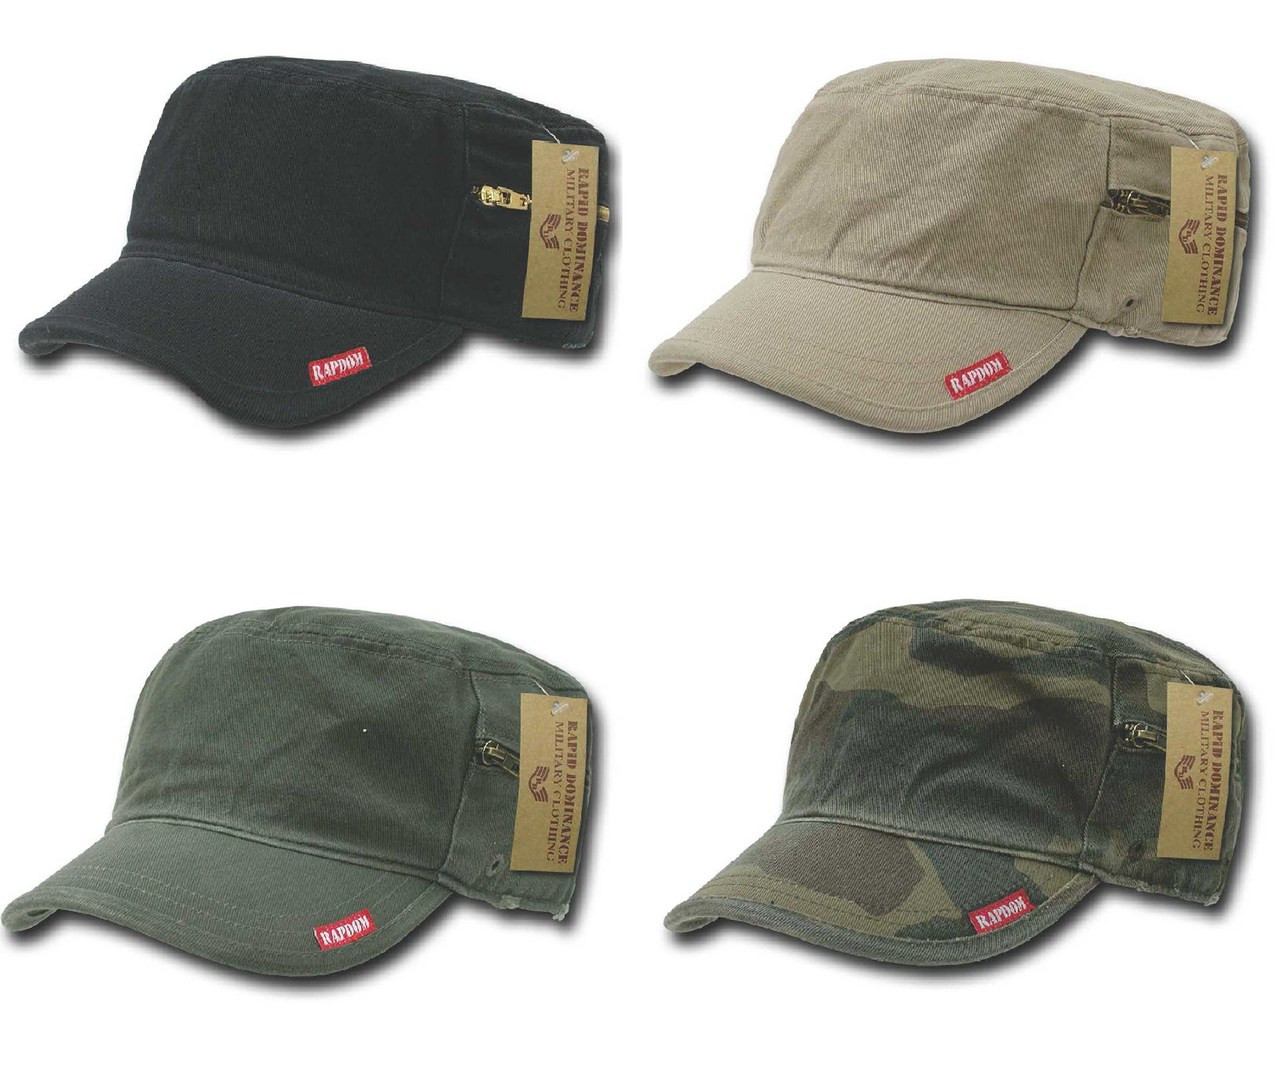 f01402c25d8 Flat Top BDU Patrol Fatigue Cadet Military Hat With Zipper Adjustable Caps  Cap